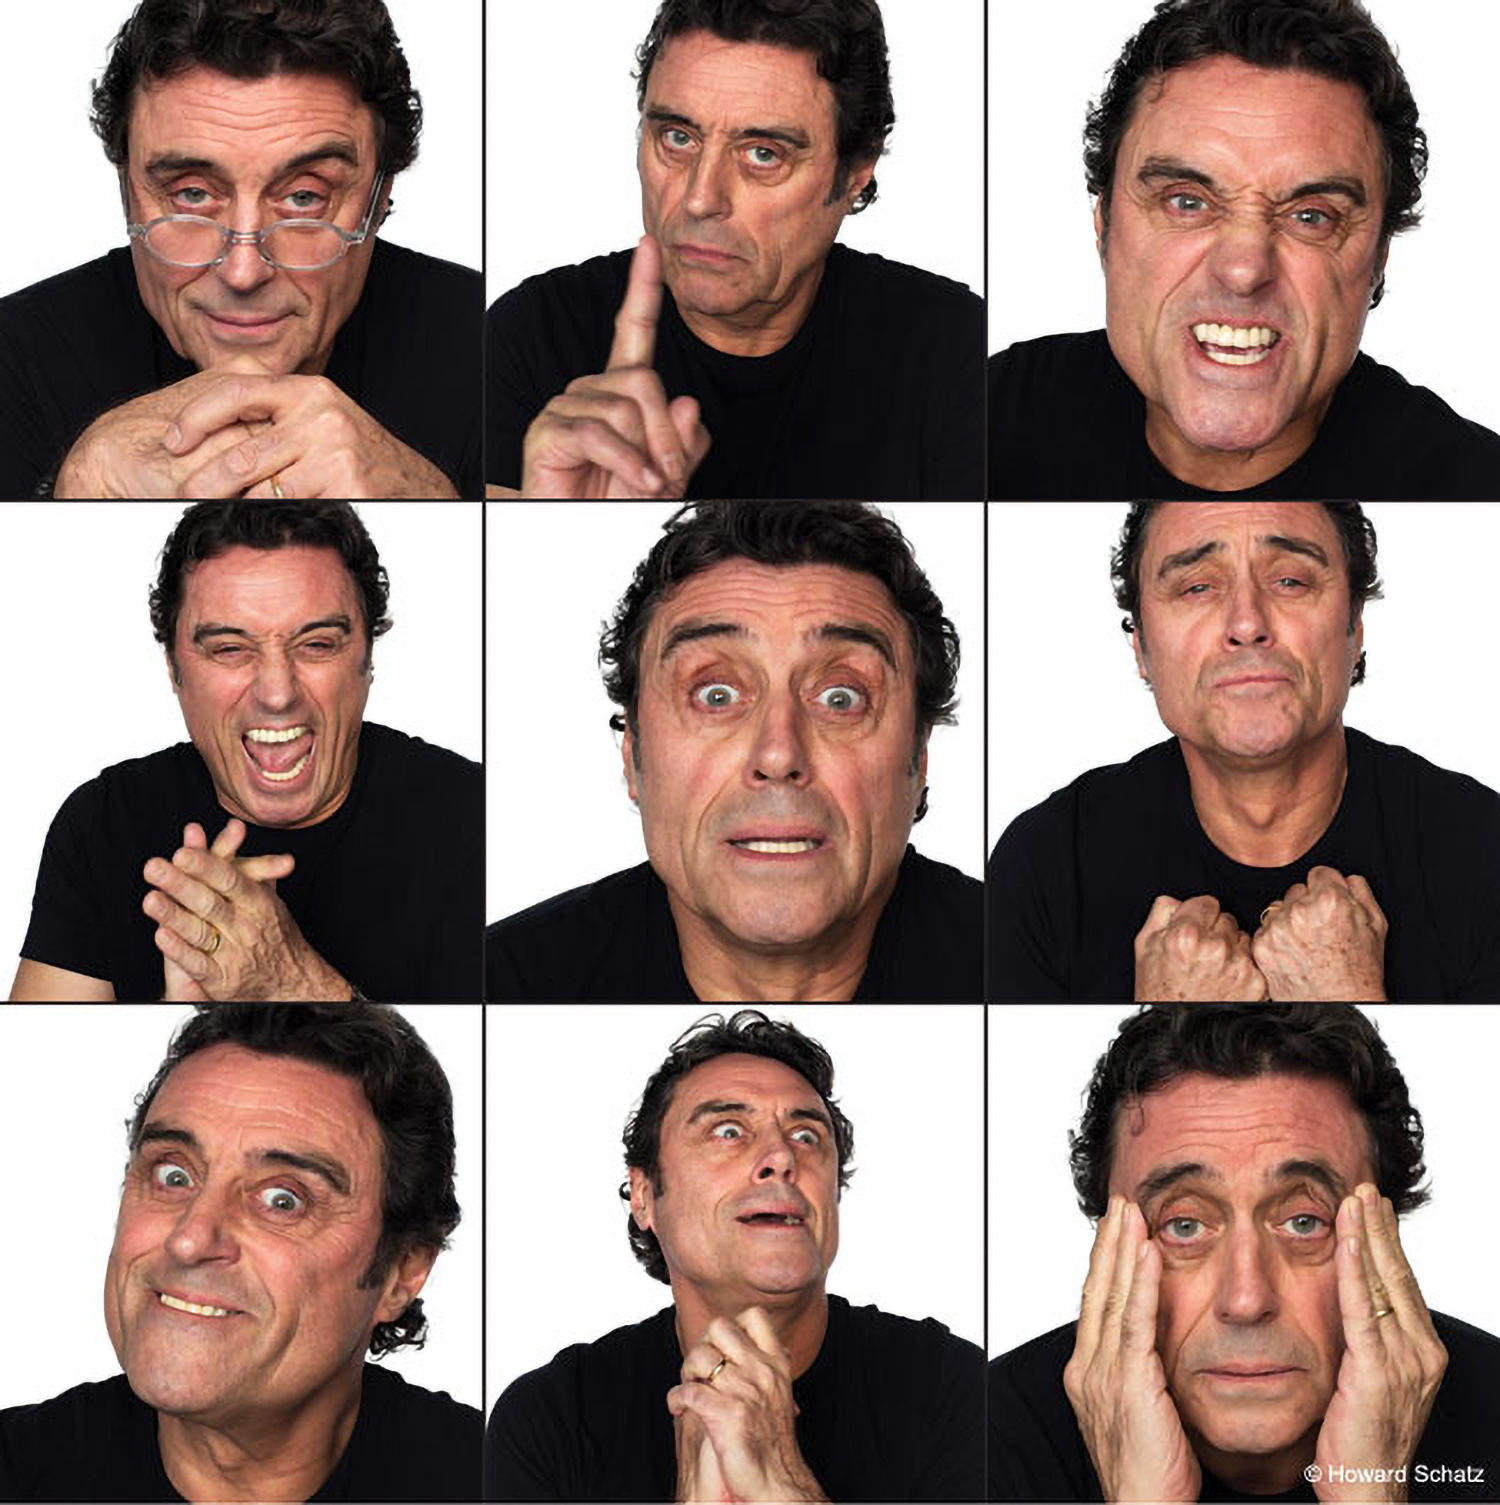 Photos of Ian McShane by Howard Schatz